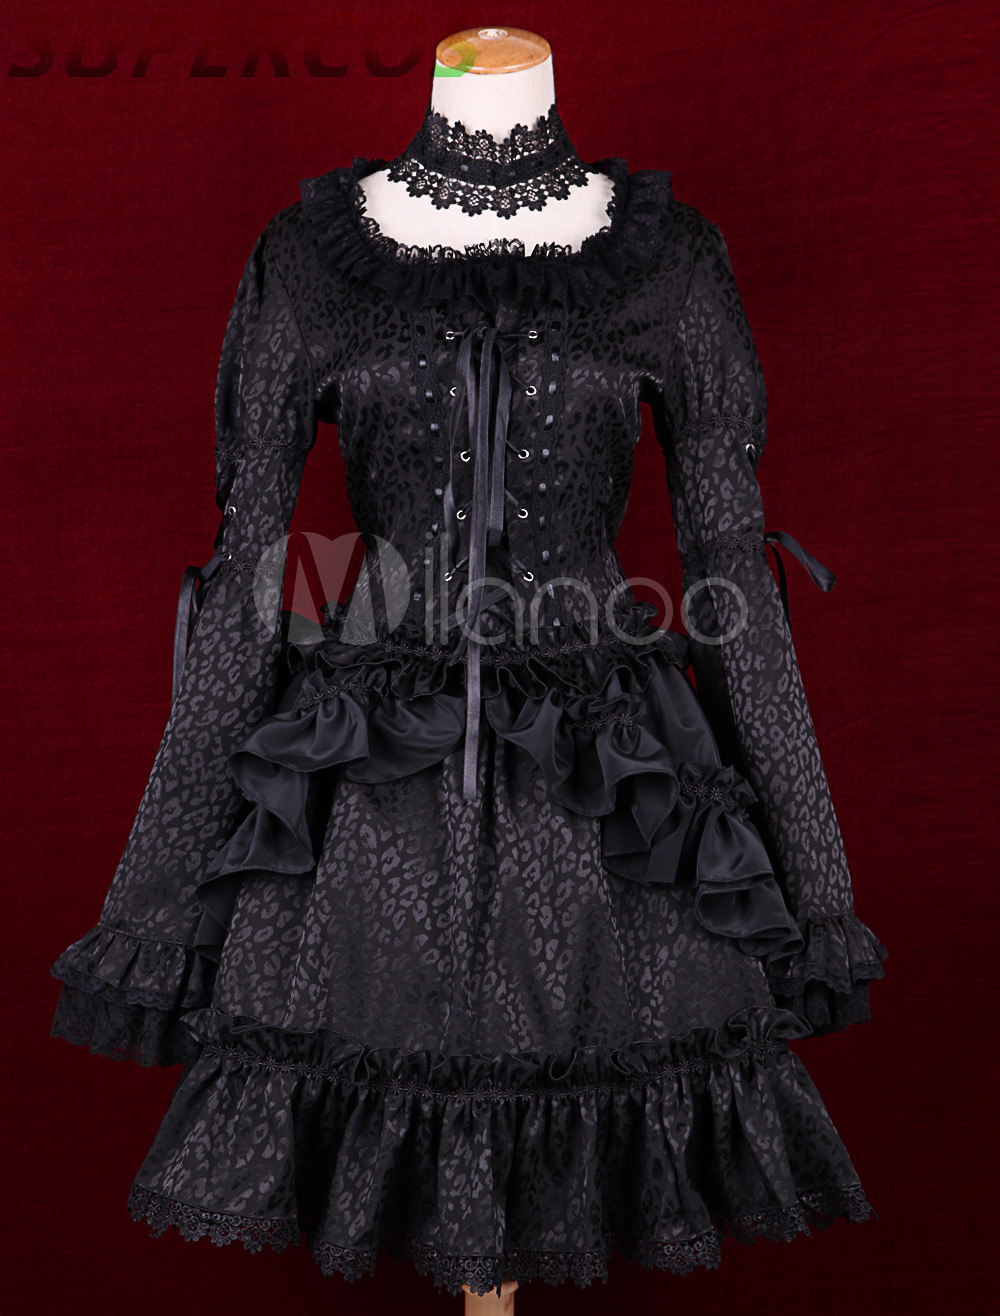 Free shipping! New Arrivals! High quality! Black Satin Square Neck Long Sleeves Ruffles Gothic Lolita Dress